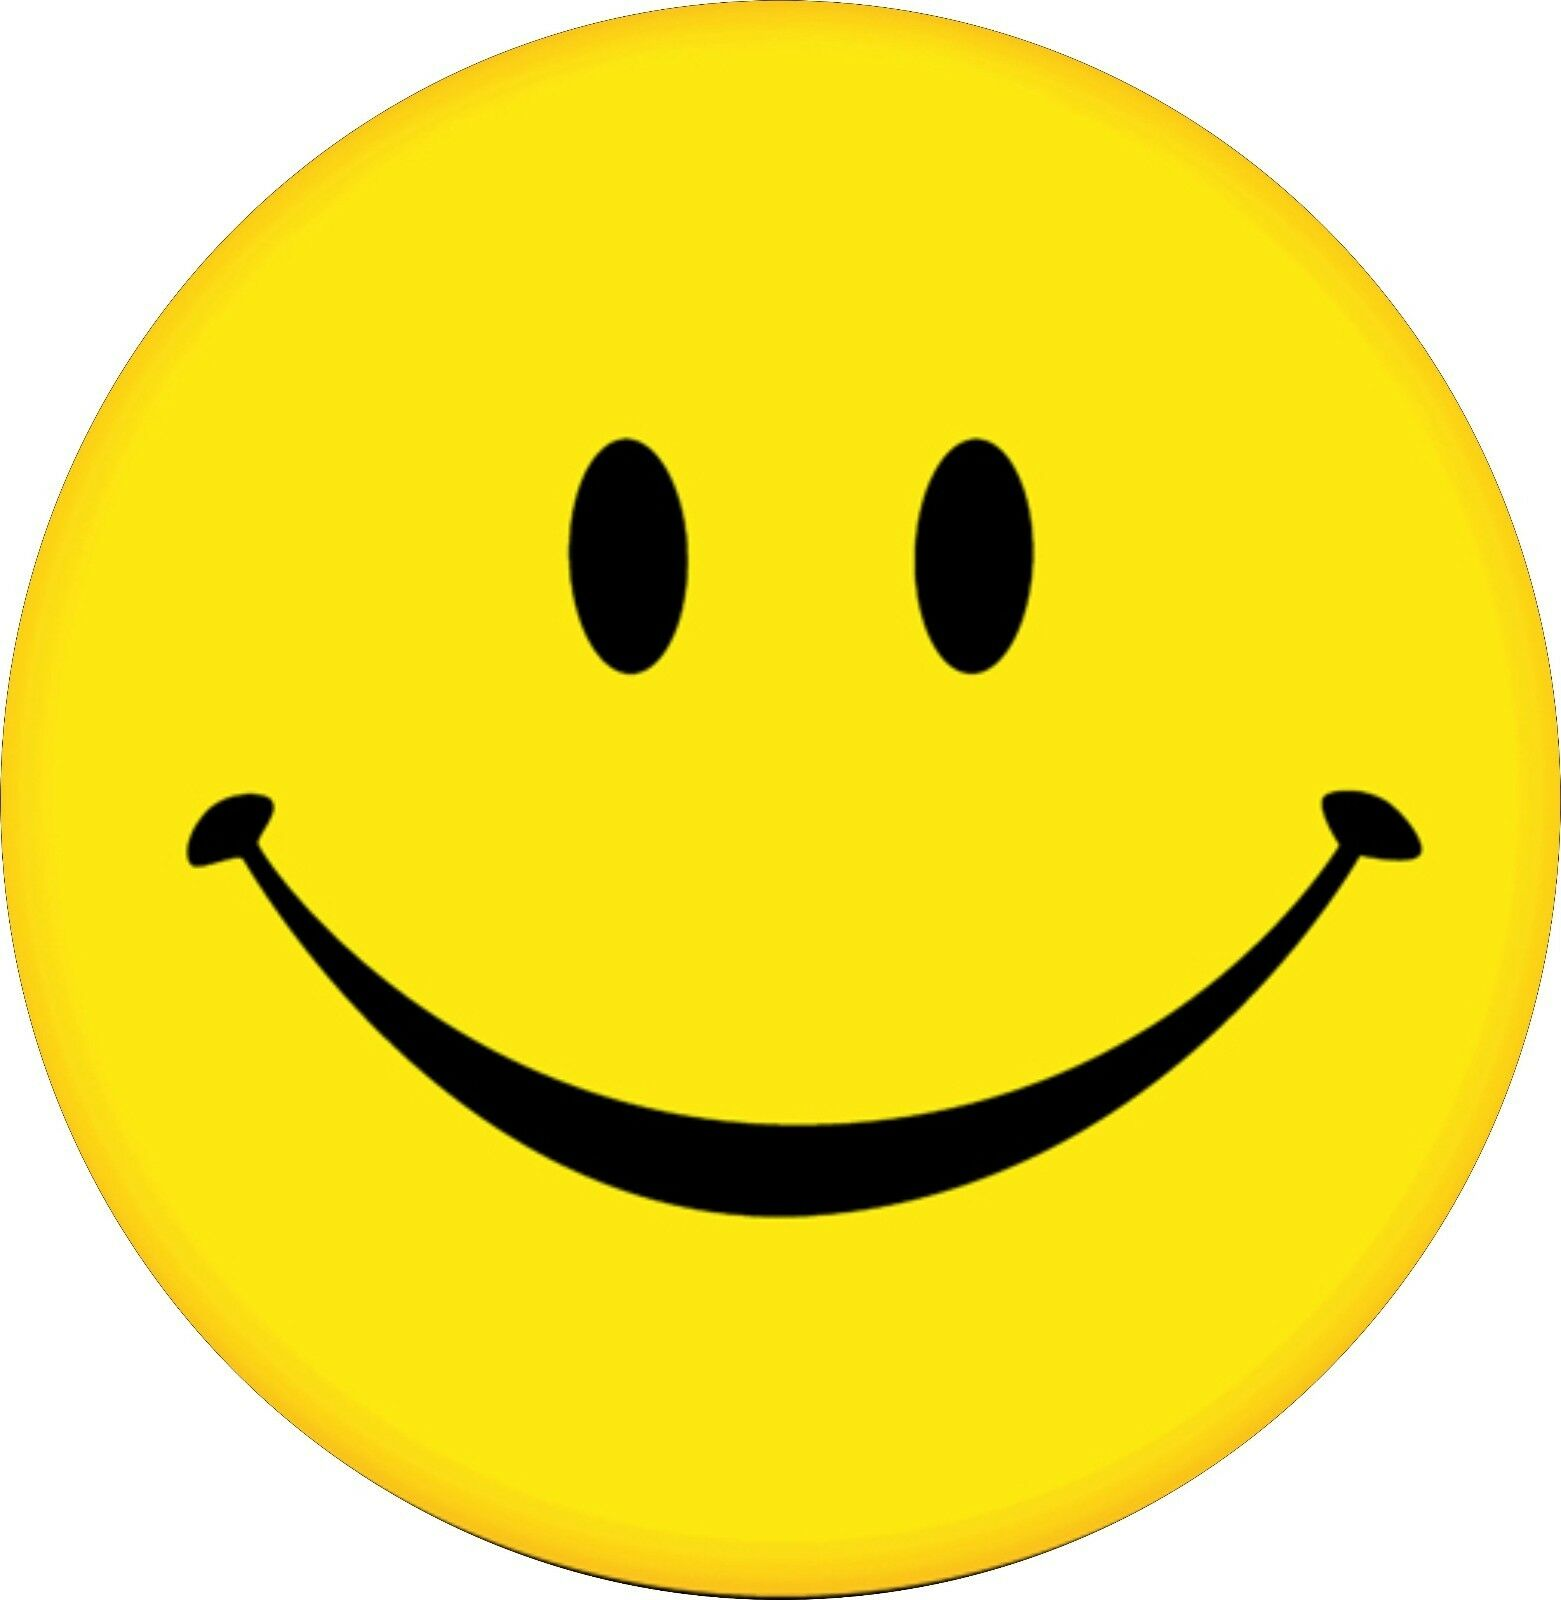 Smiley Face Spare  Tire Cover Jeep RV Camper RV VW Trailer etc(all sizes avail)  hot sale online